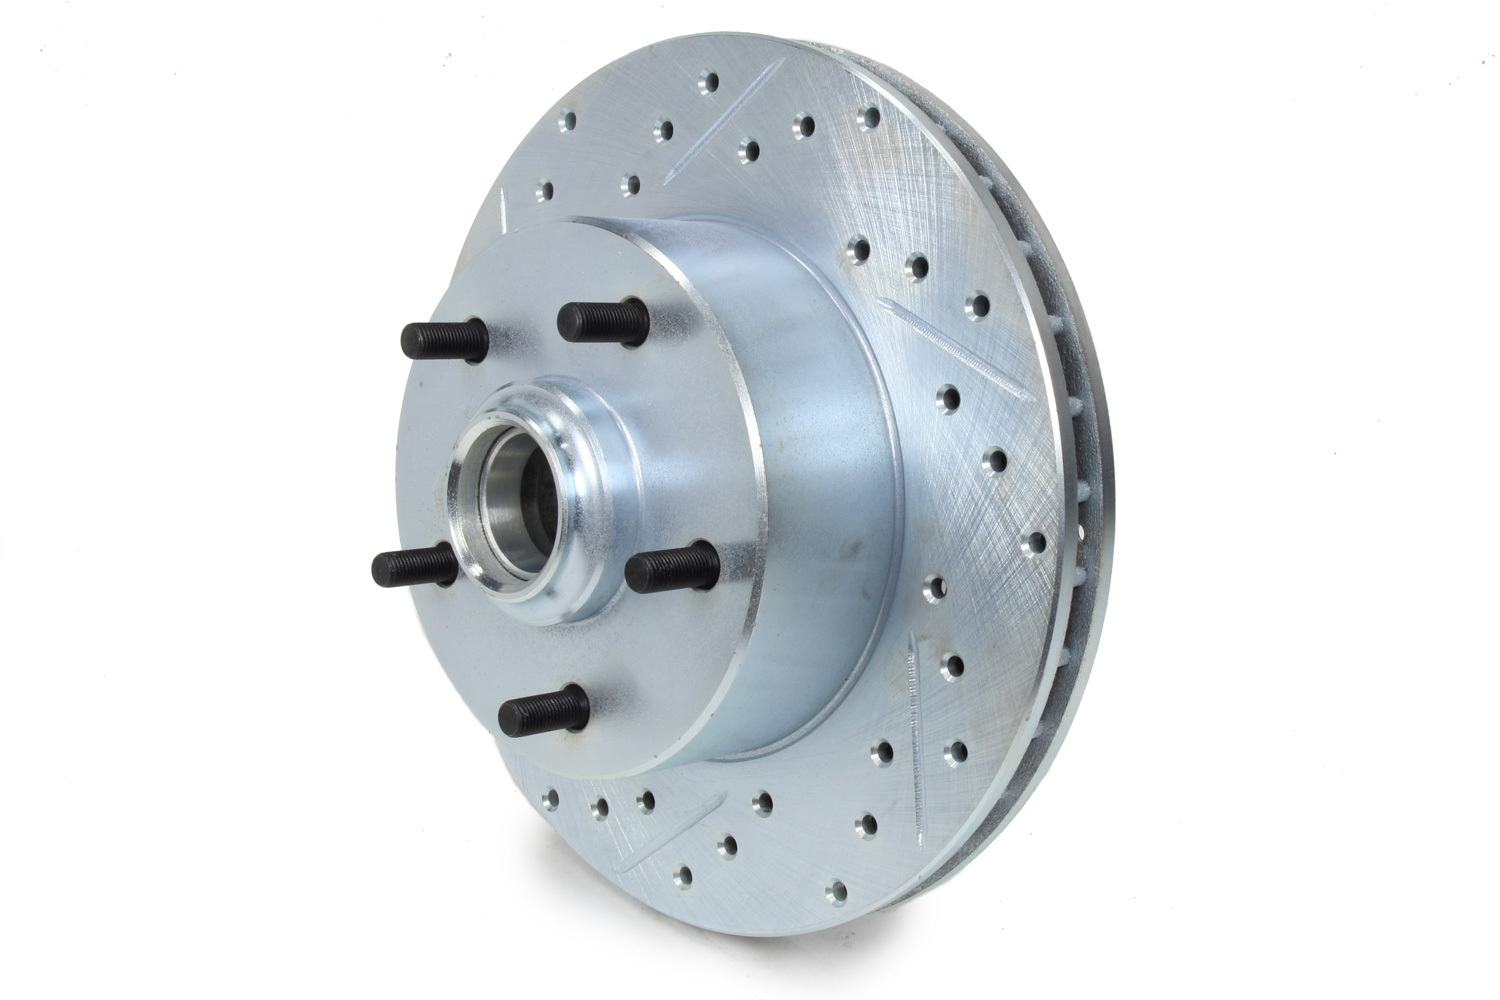 Stoptech 227.62000R Brake Rotor, Sport, Front, Passenger Side, Drilled / Slotted, 279.3 mm OD, 26.3 mm Thick, 5 x 120.6 mm Bolt Pattern, Iron, Natural, Each